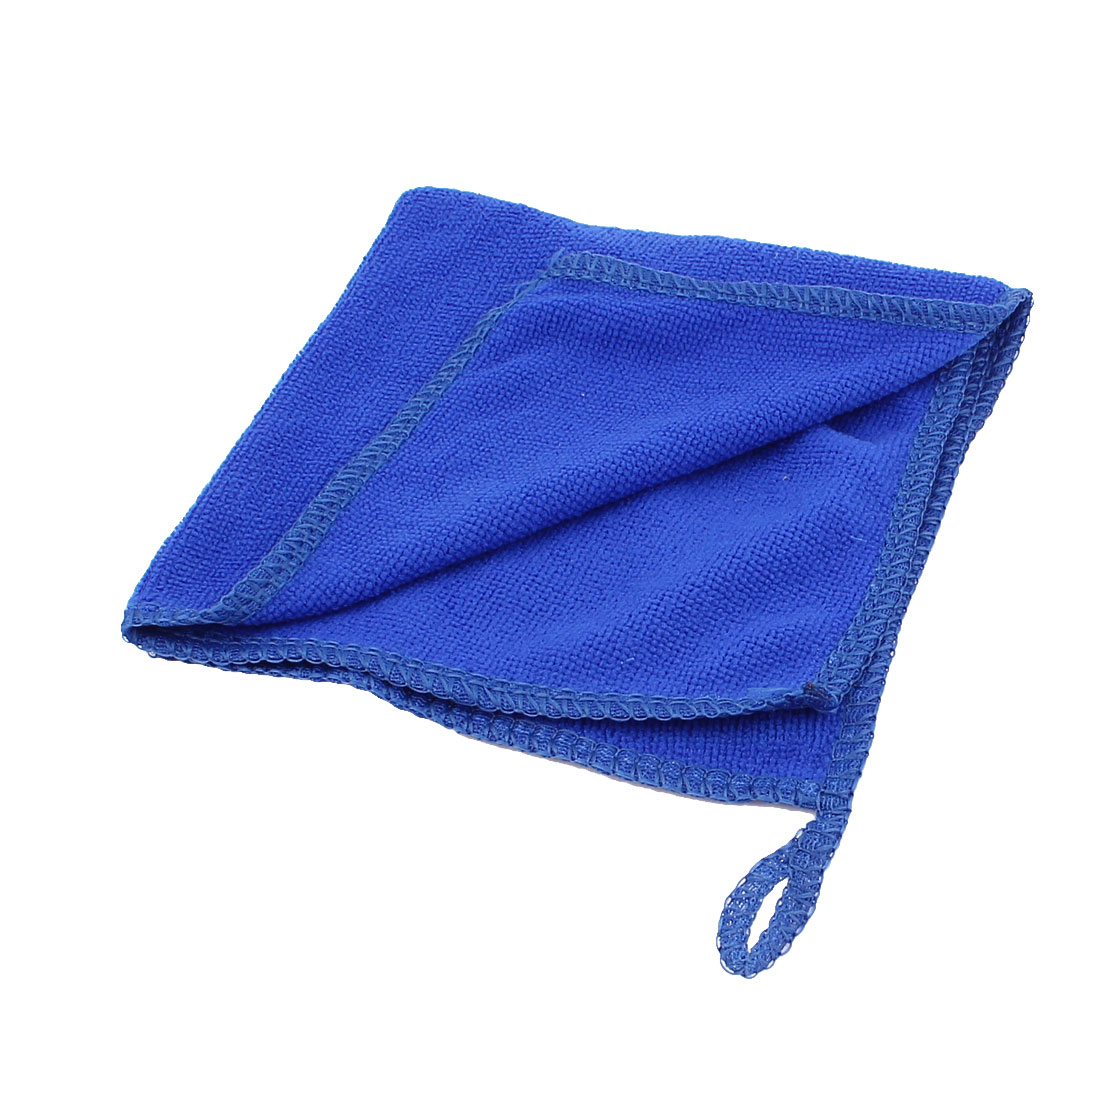 2pcs 28cmx28cm Blue Microfiber Water Absorbent Car Cleaning Drying Towels Wash Clean Cloth